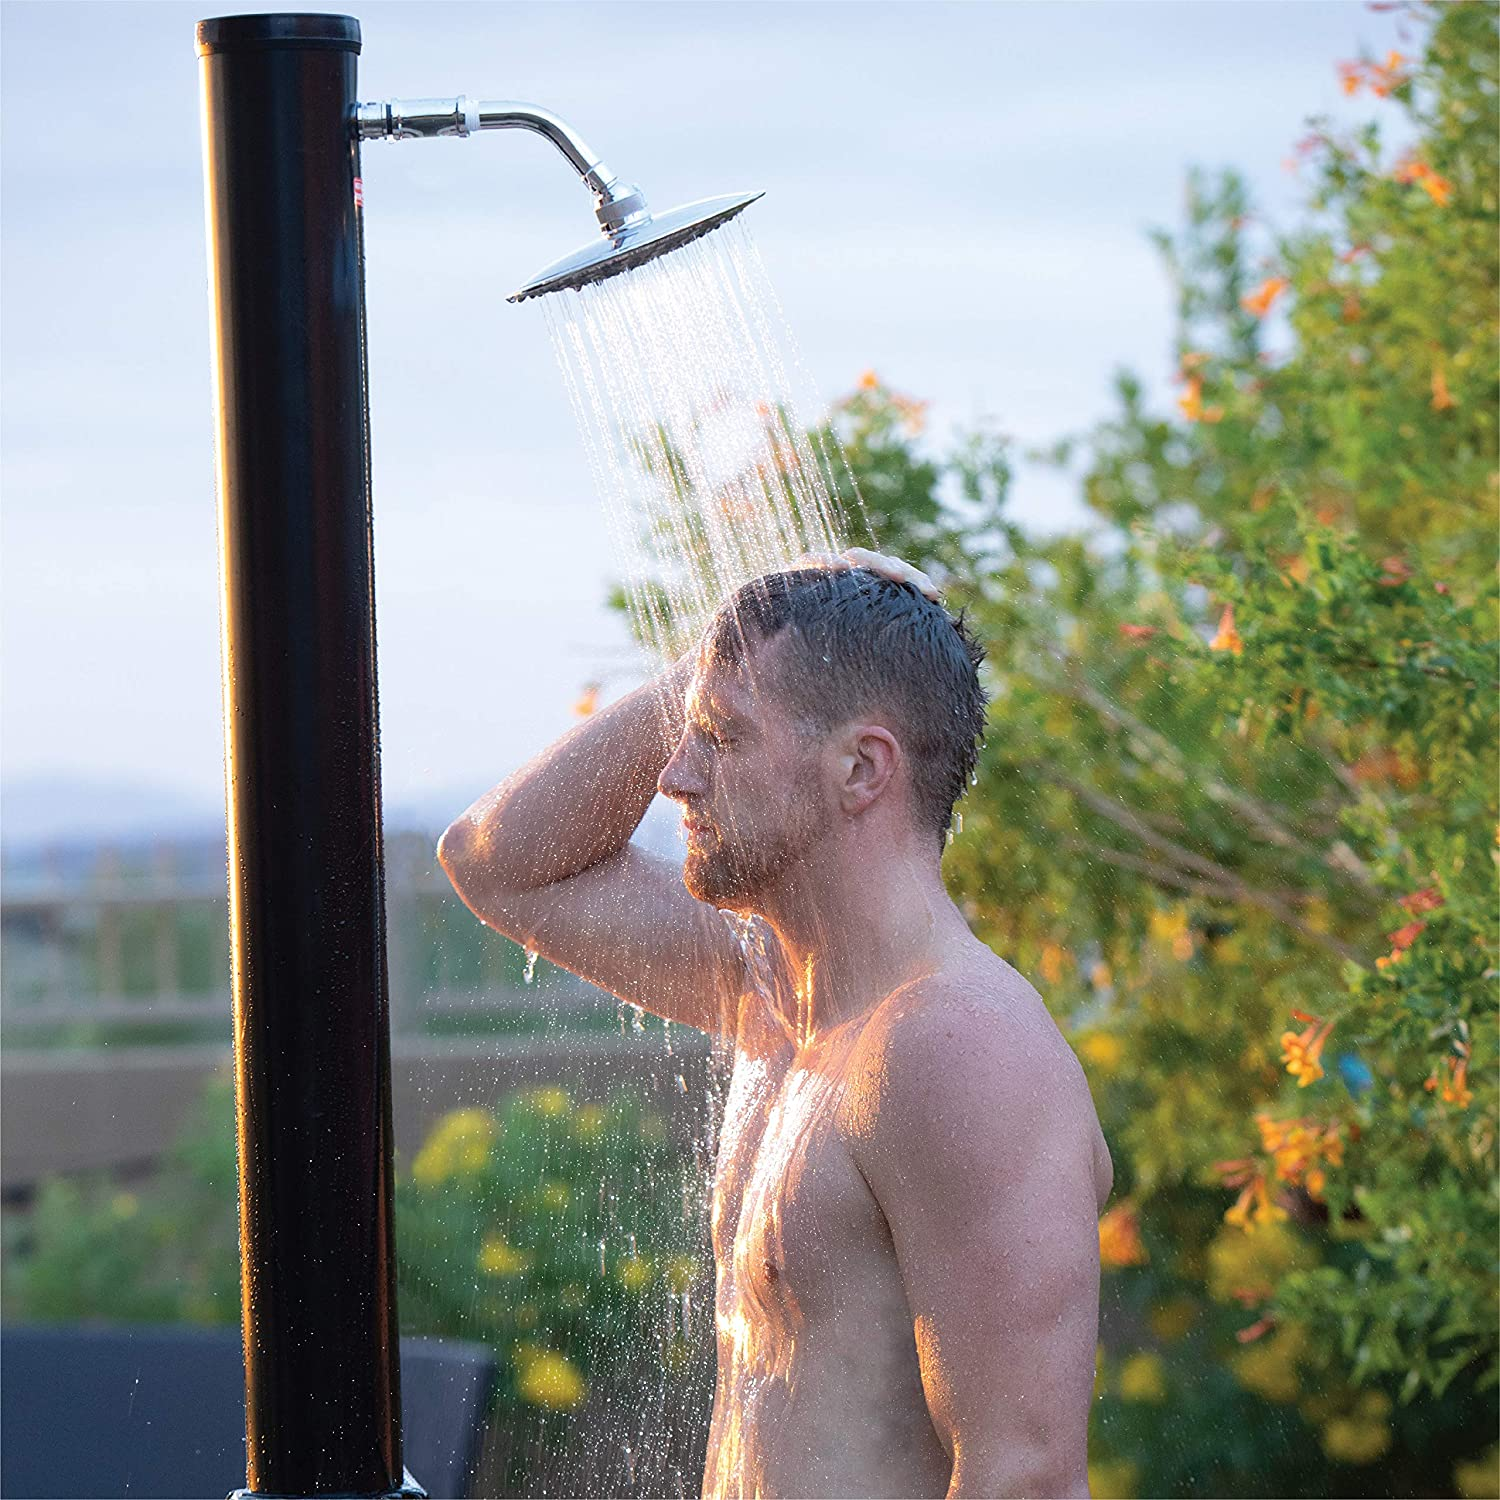 "GAME Outdoor Solar Shower with Base, Solar Powered Shower, Connects to Standard Garden Hose, Hot and Cold Adjustment, Holds 5.5 Gallons of Water, Freestanding or Mounts, 75"" T x 4"" W"